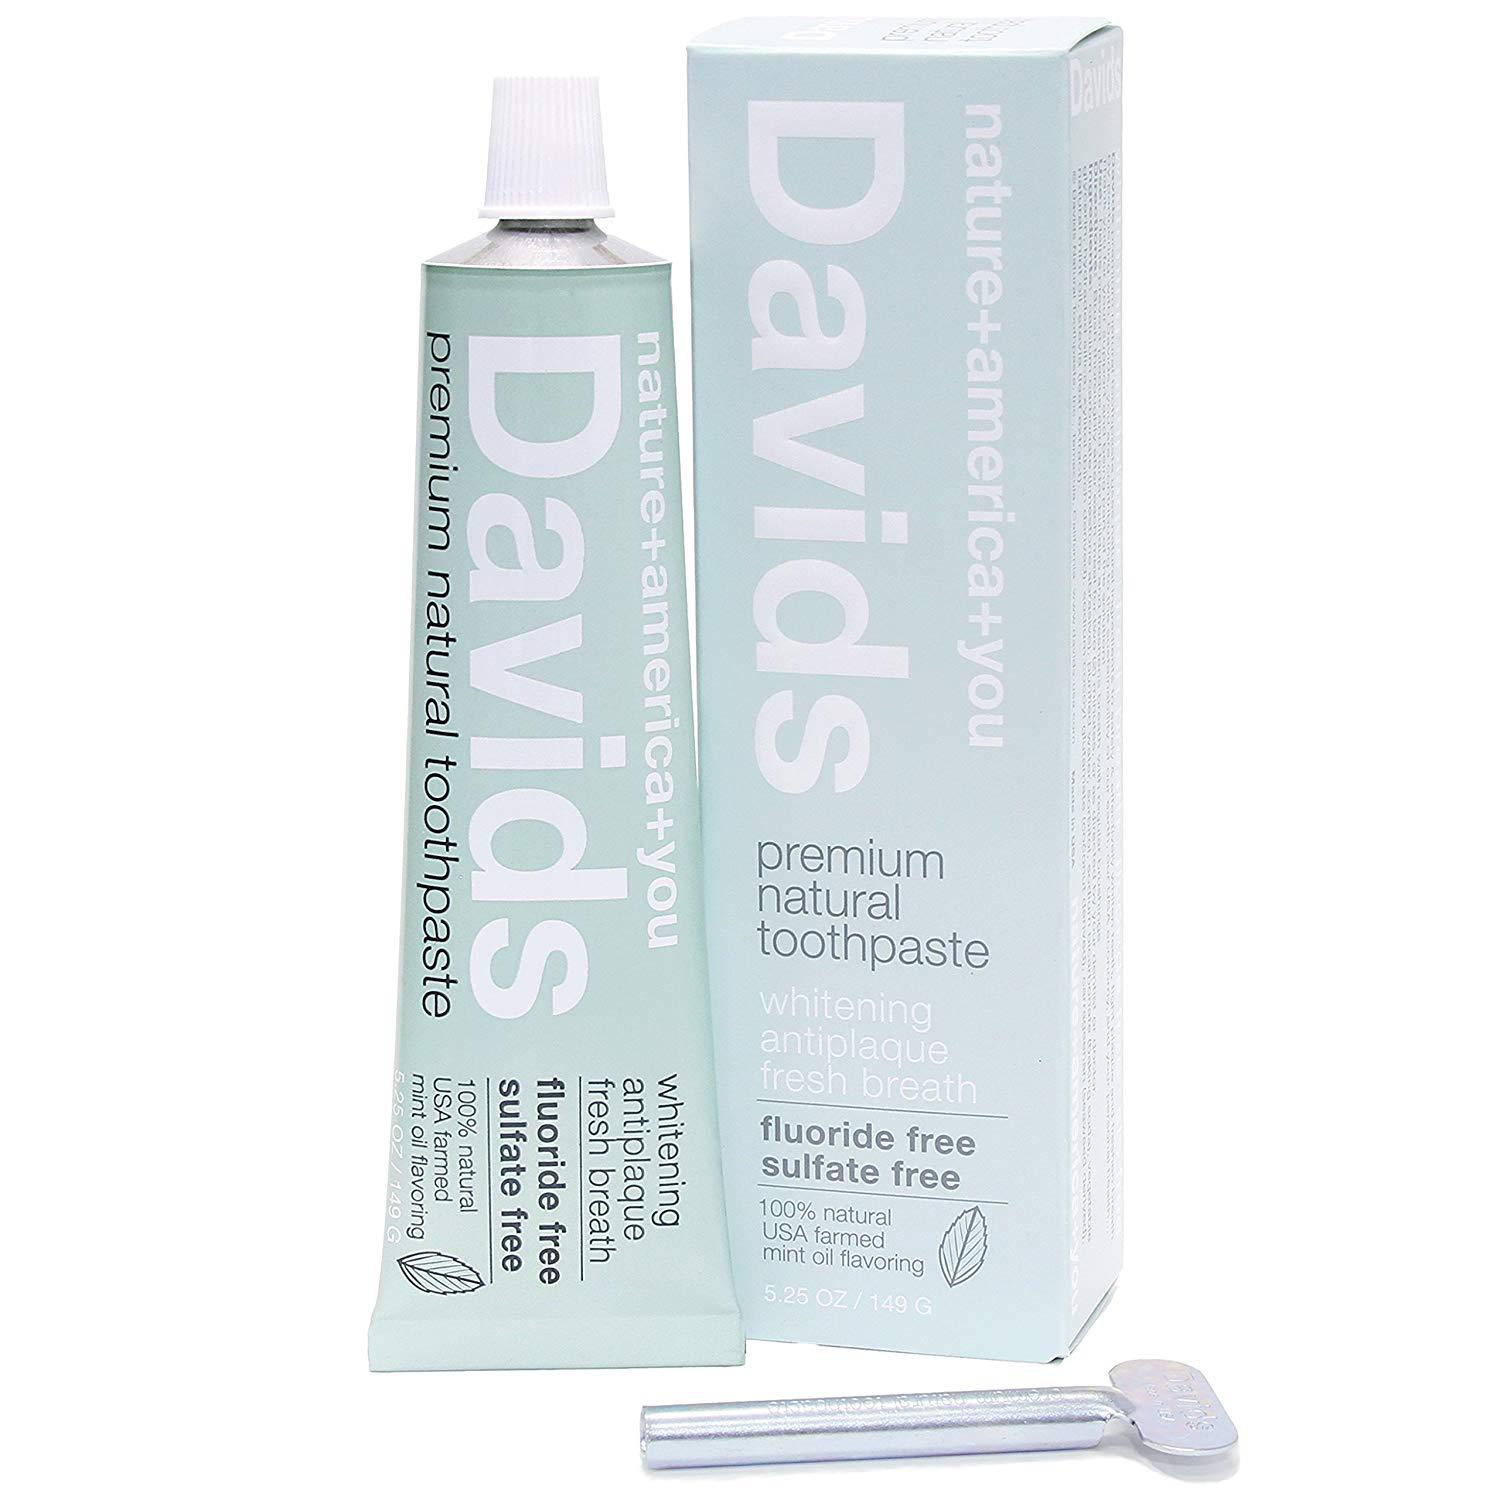 Davids Premium Natural Toothpaste - Rated a 1 on EWG    Natural Toothpaste To Safely & Effectively Whiten Teeth, Remove Plaque, And Freshen Breath. Smooth & Creamy, Non-Gritty. Blend Of Premium Domestic Mint Oils For Exceptional Flavor.   EWG VERIFIED, 98% USA ORIGIN Ingredients For Superior Quality And To Support USA Jobs.   Fluoride Free, SLS Free, Sulfate Free, Vegan, Includes Xylitol For Healthy Enamel. Kid-Friendly - Kids Love It Too.  Recyclable Metal Tube & FSC Certified Packaging. Free Metal Tube Key Roller/Squeezer Included.